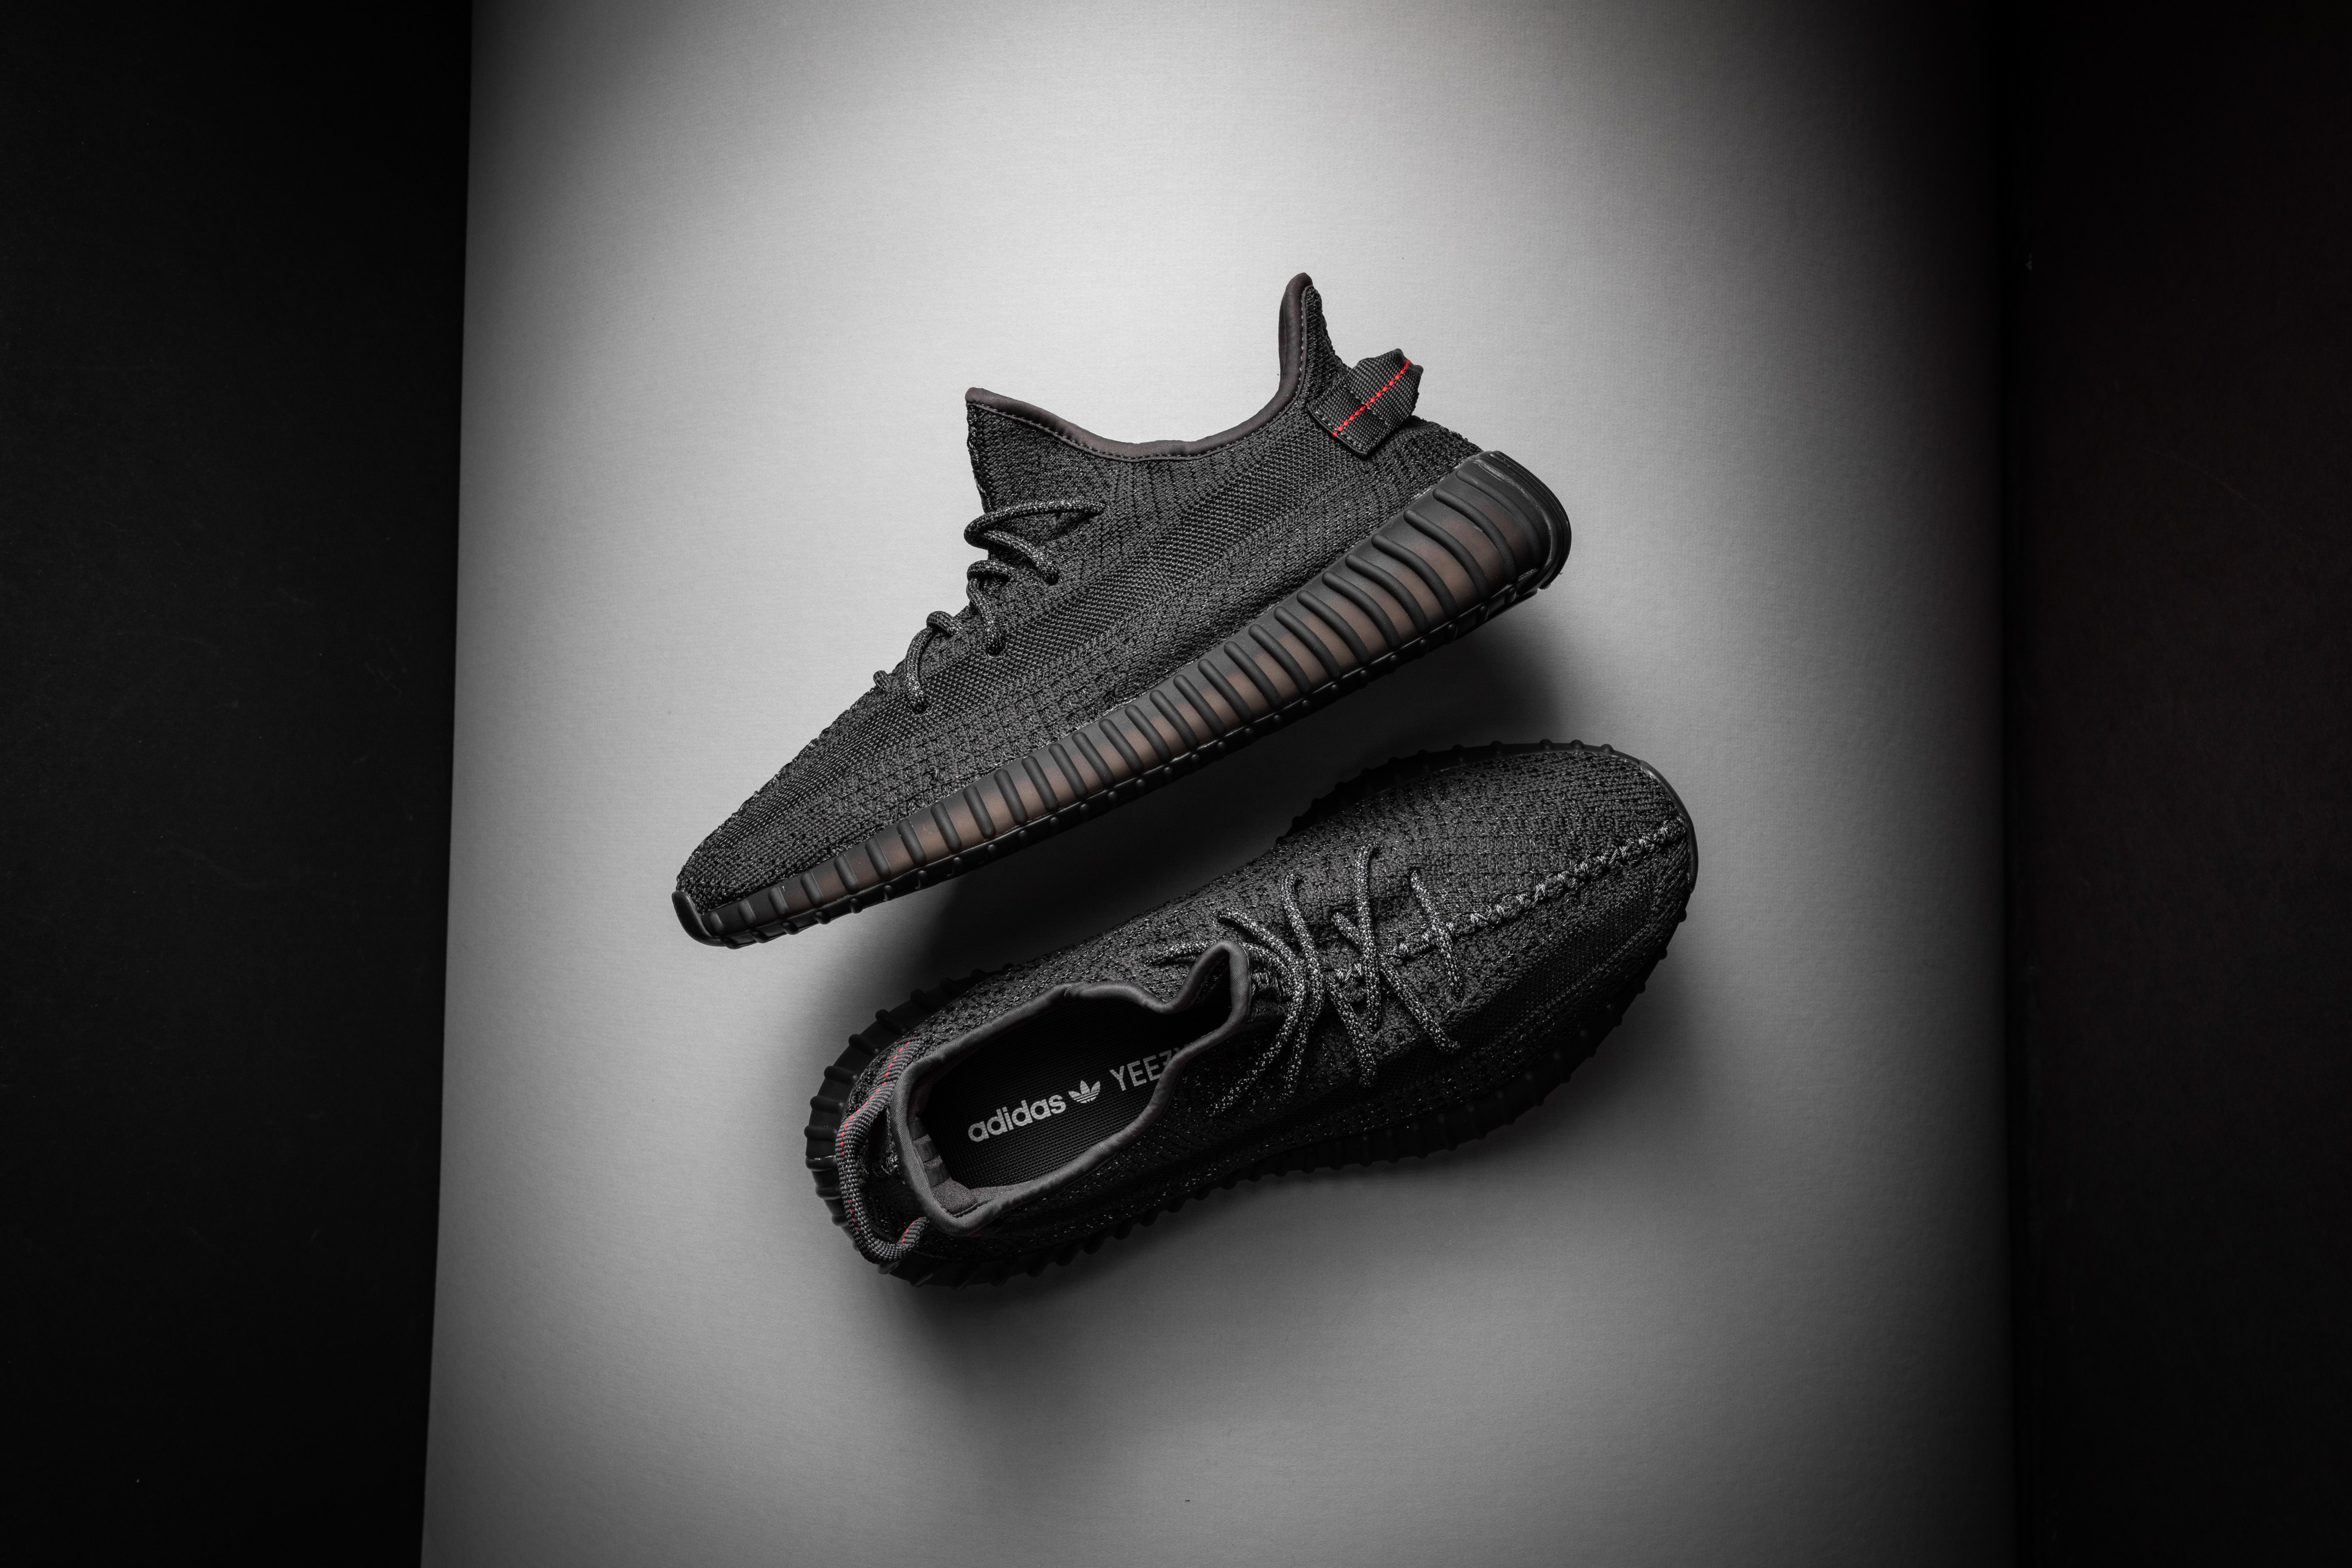 Adidas Yeezy Boost 350 V2 Reflective Black Static Fu9007